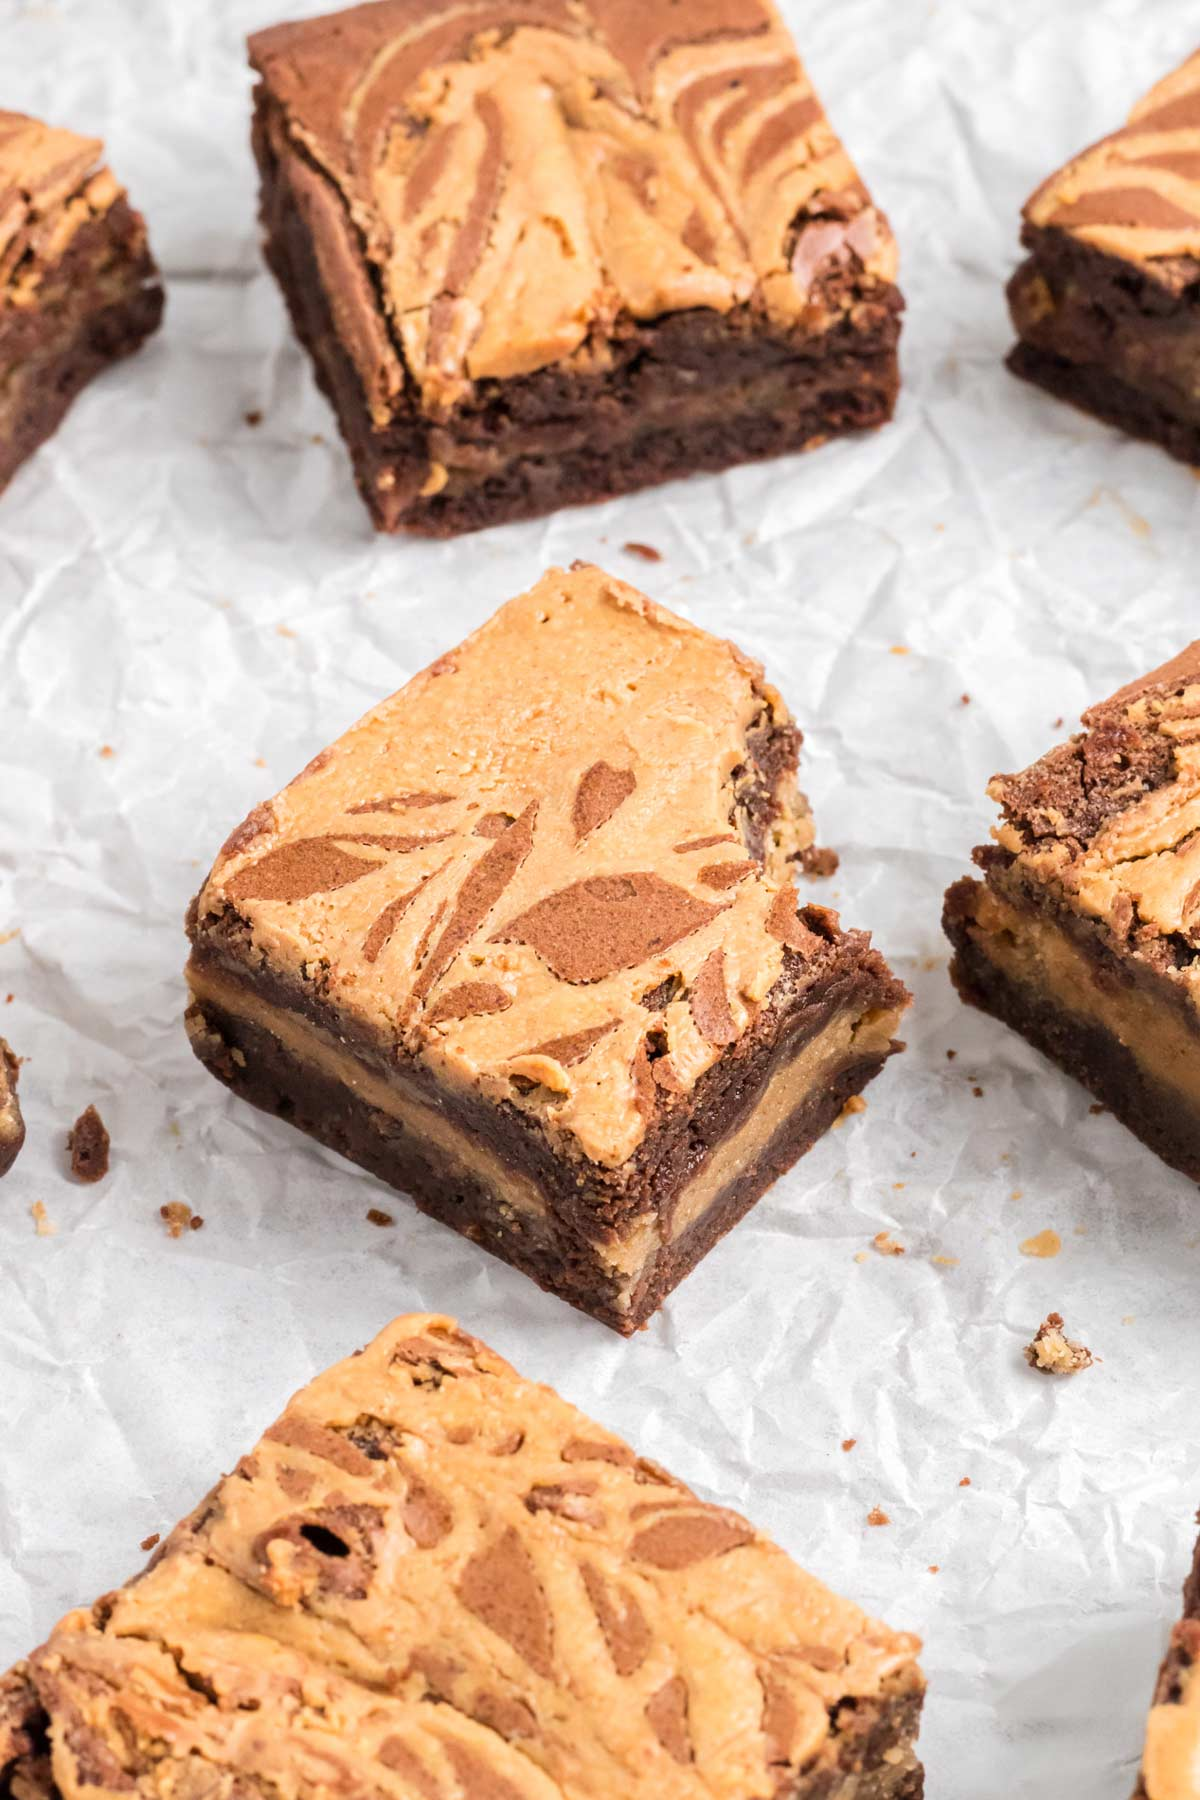 close-up of a peanut butter brownie.